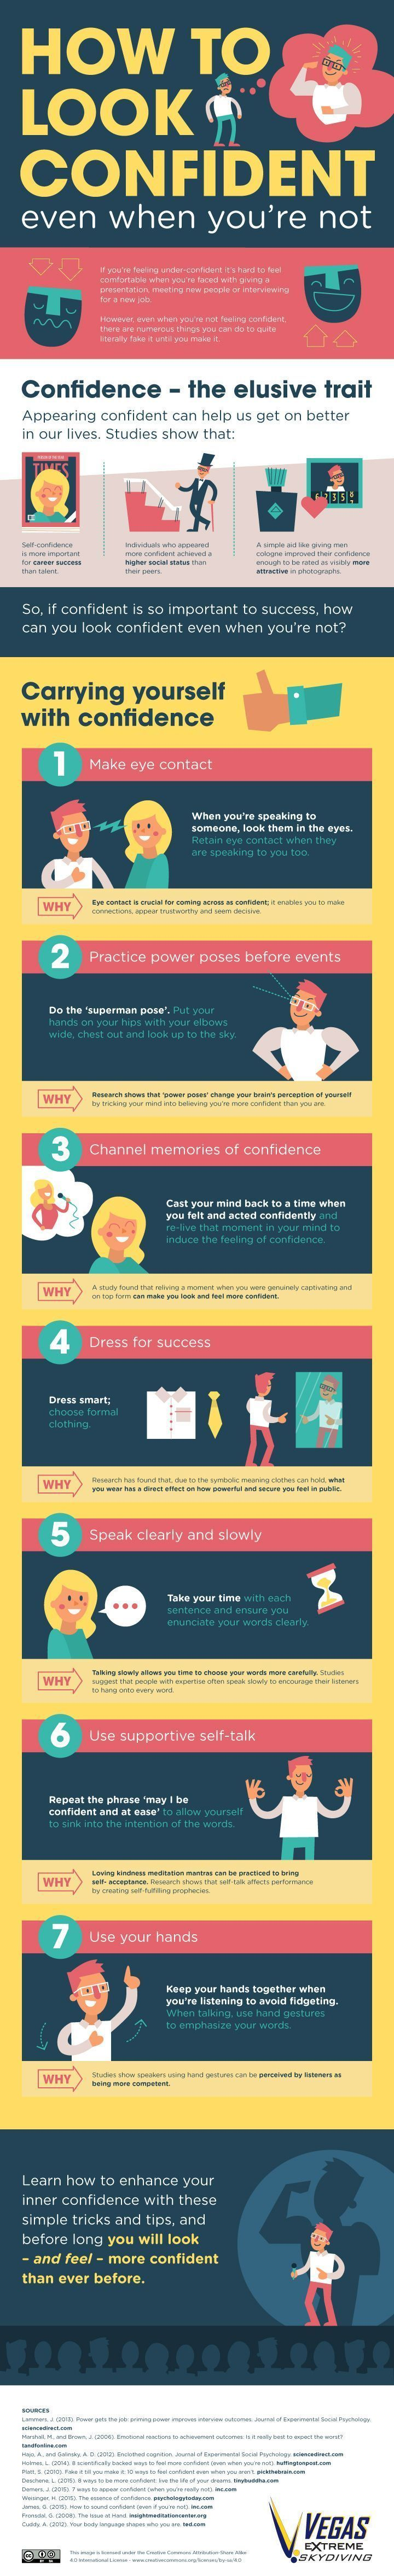 How to Look Confident Even When You're Not http://www.success.com/article/how-to-look-confident-even-when-youre-not #confidence #lifehacks #infographic